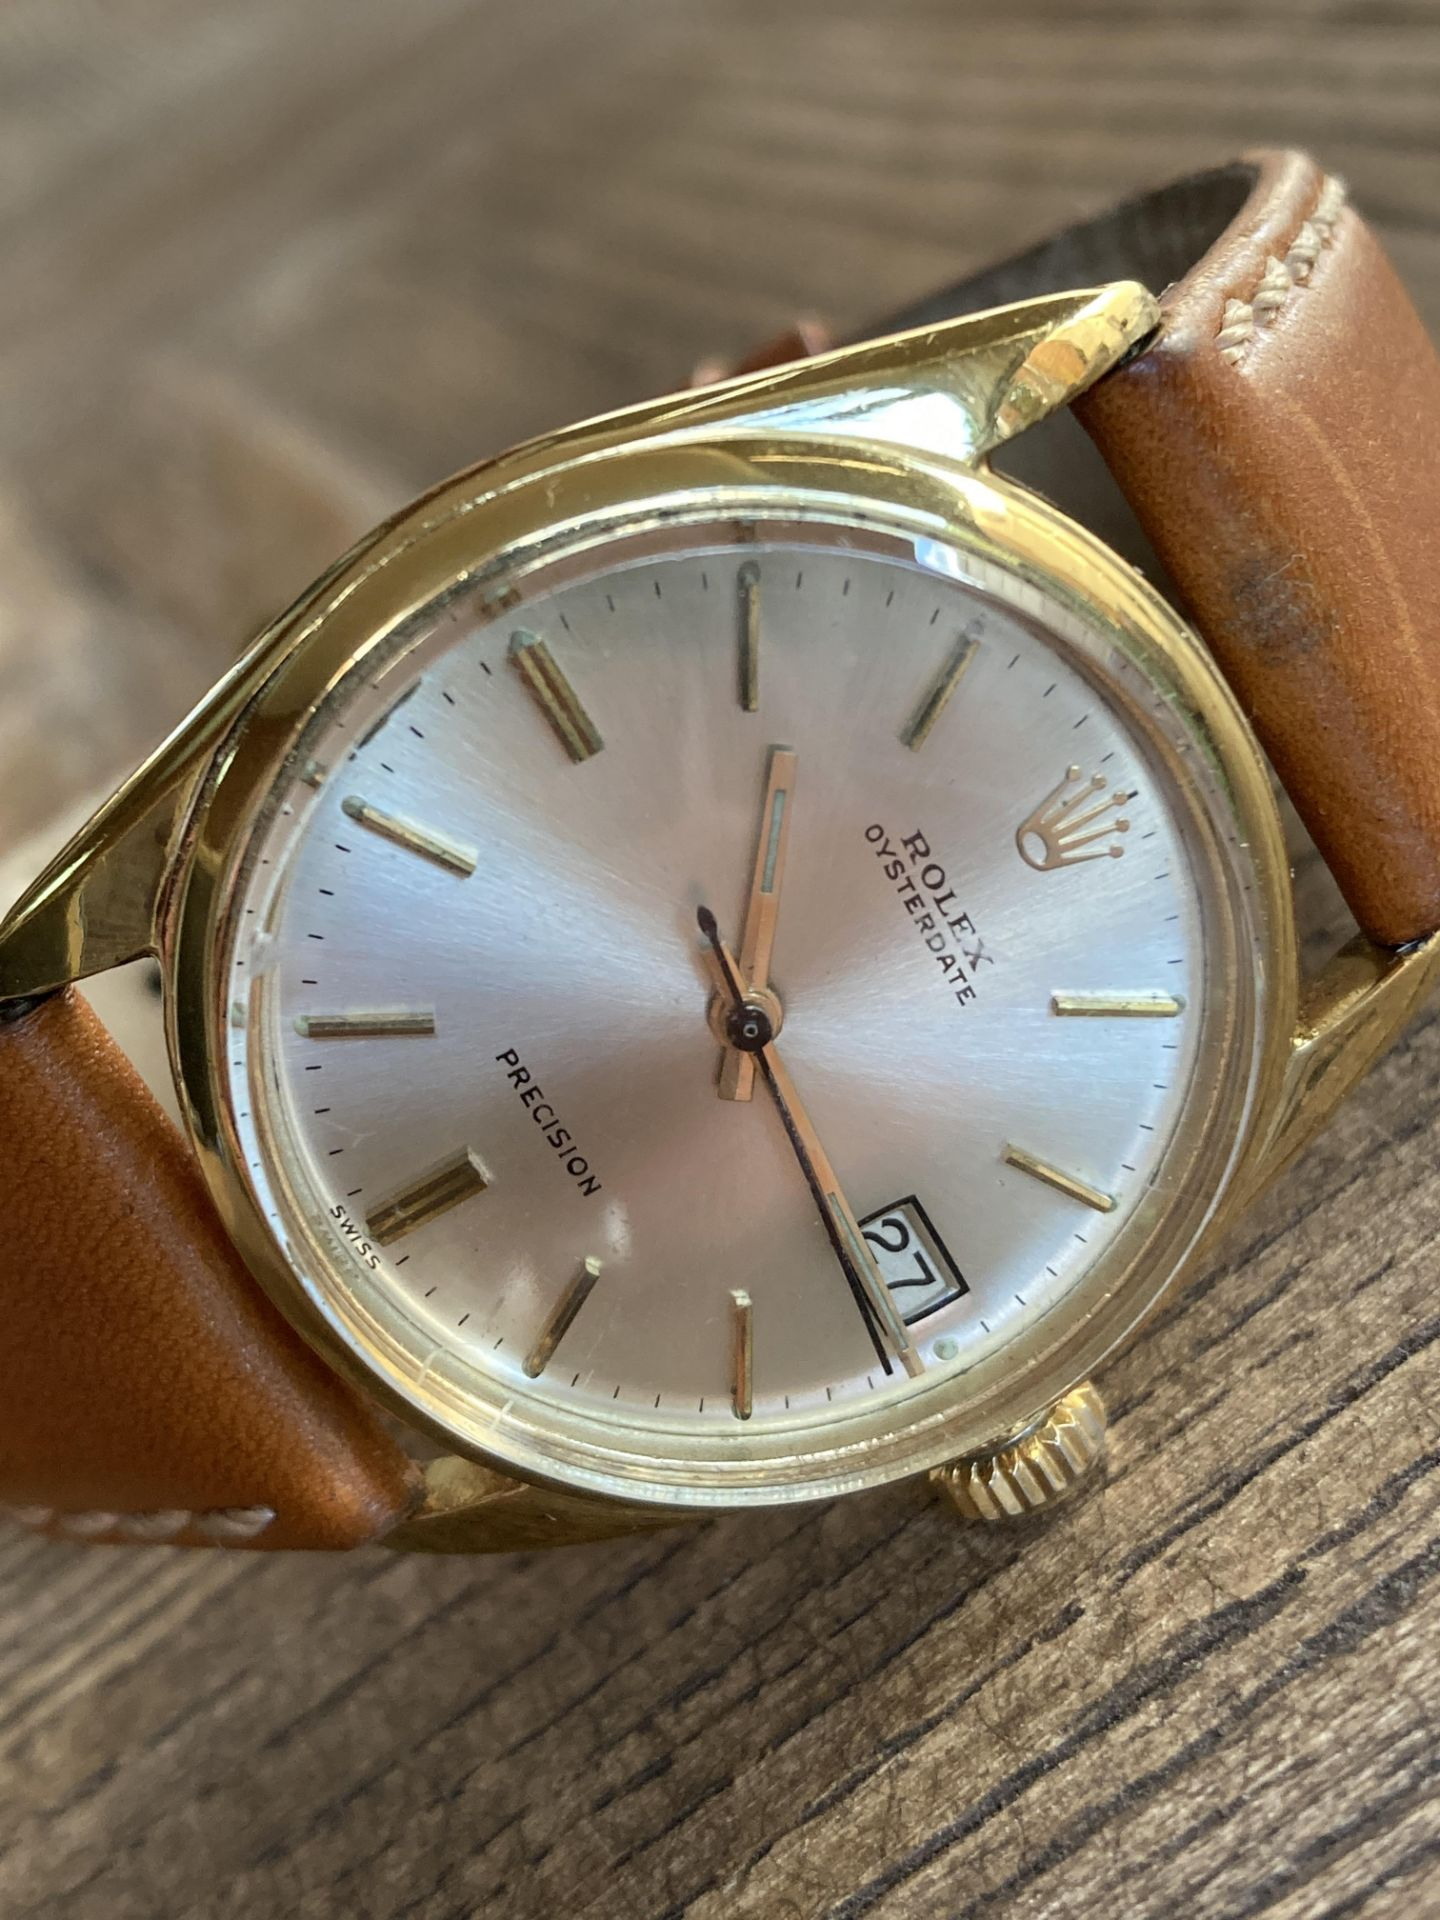 ROLEX OYSTERDATE PRECISION WATCH (34MM) - Image 2 of 3